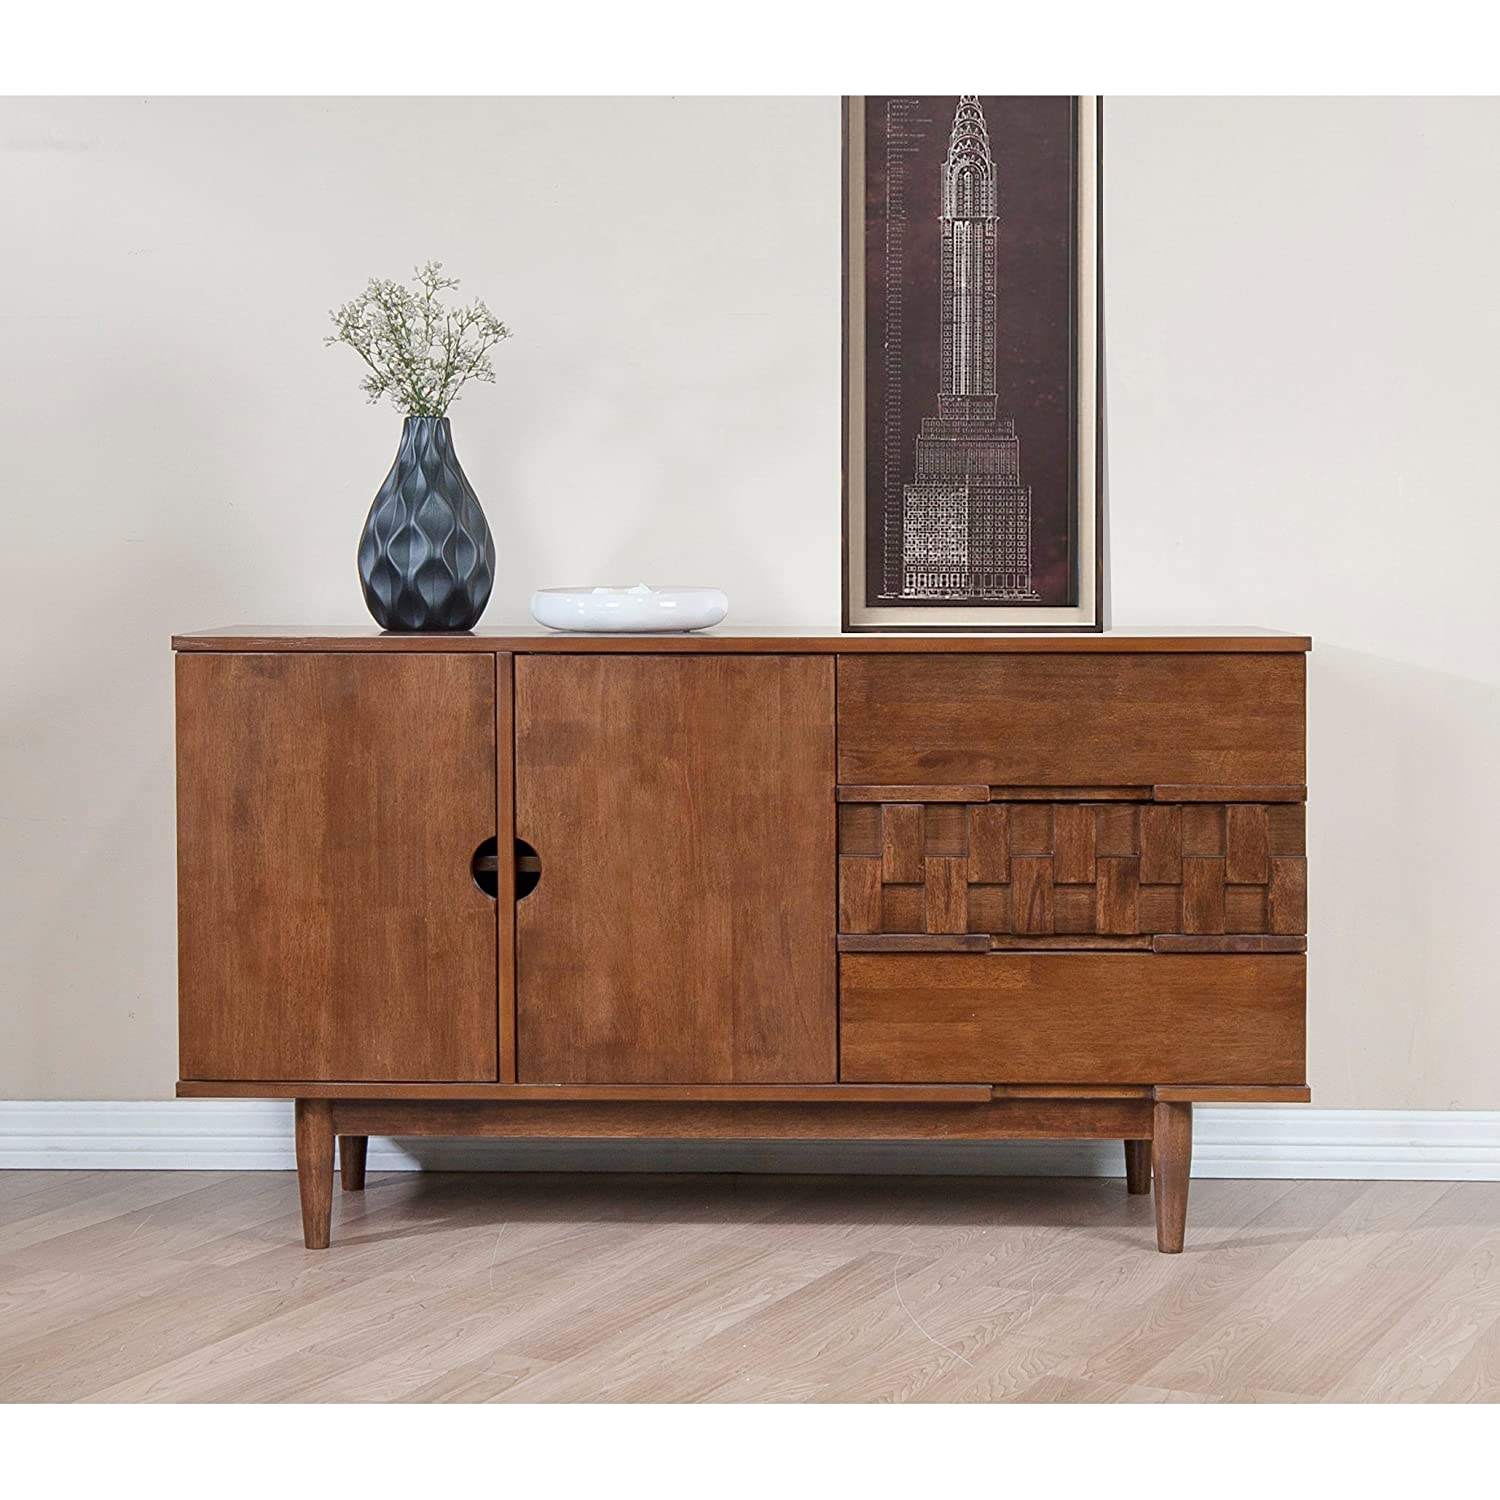 Mid Century Modern 55 inch Brown Sideboard Buffet Cabinet with 2 Doors 2 Shelves and 3 Drawers – Includes Modhaus Living Pen